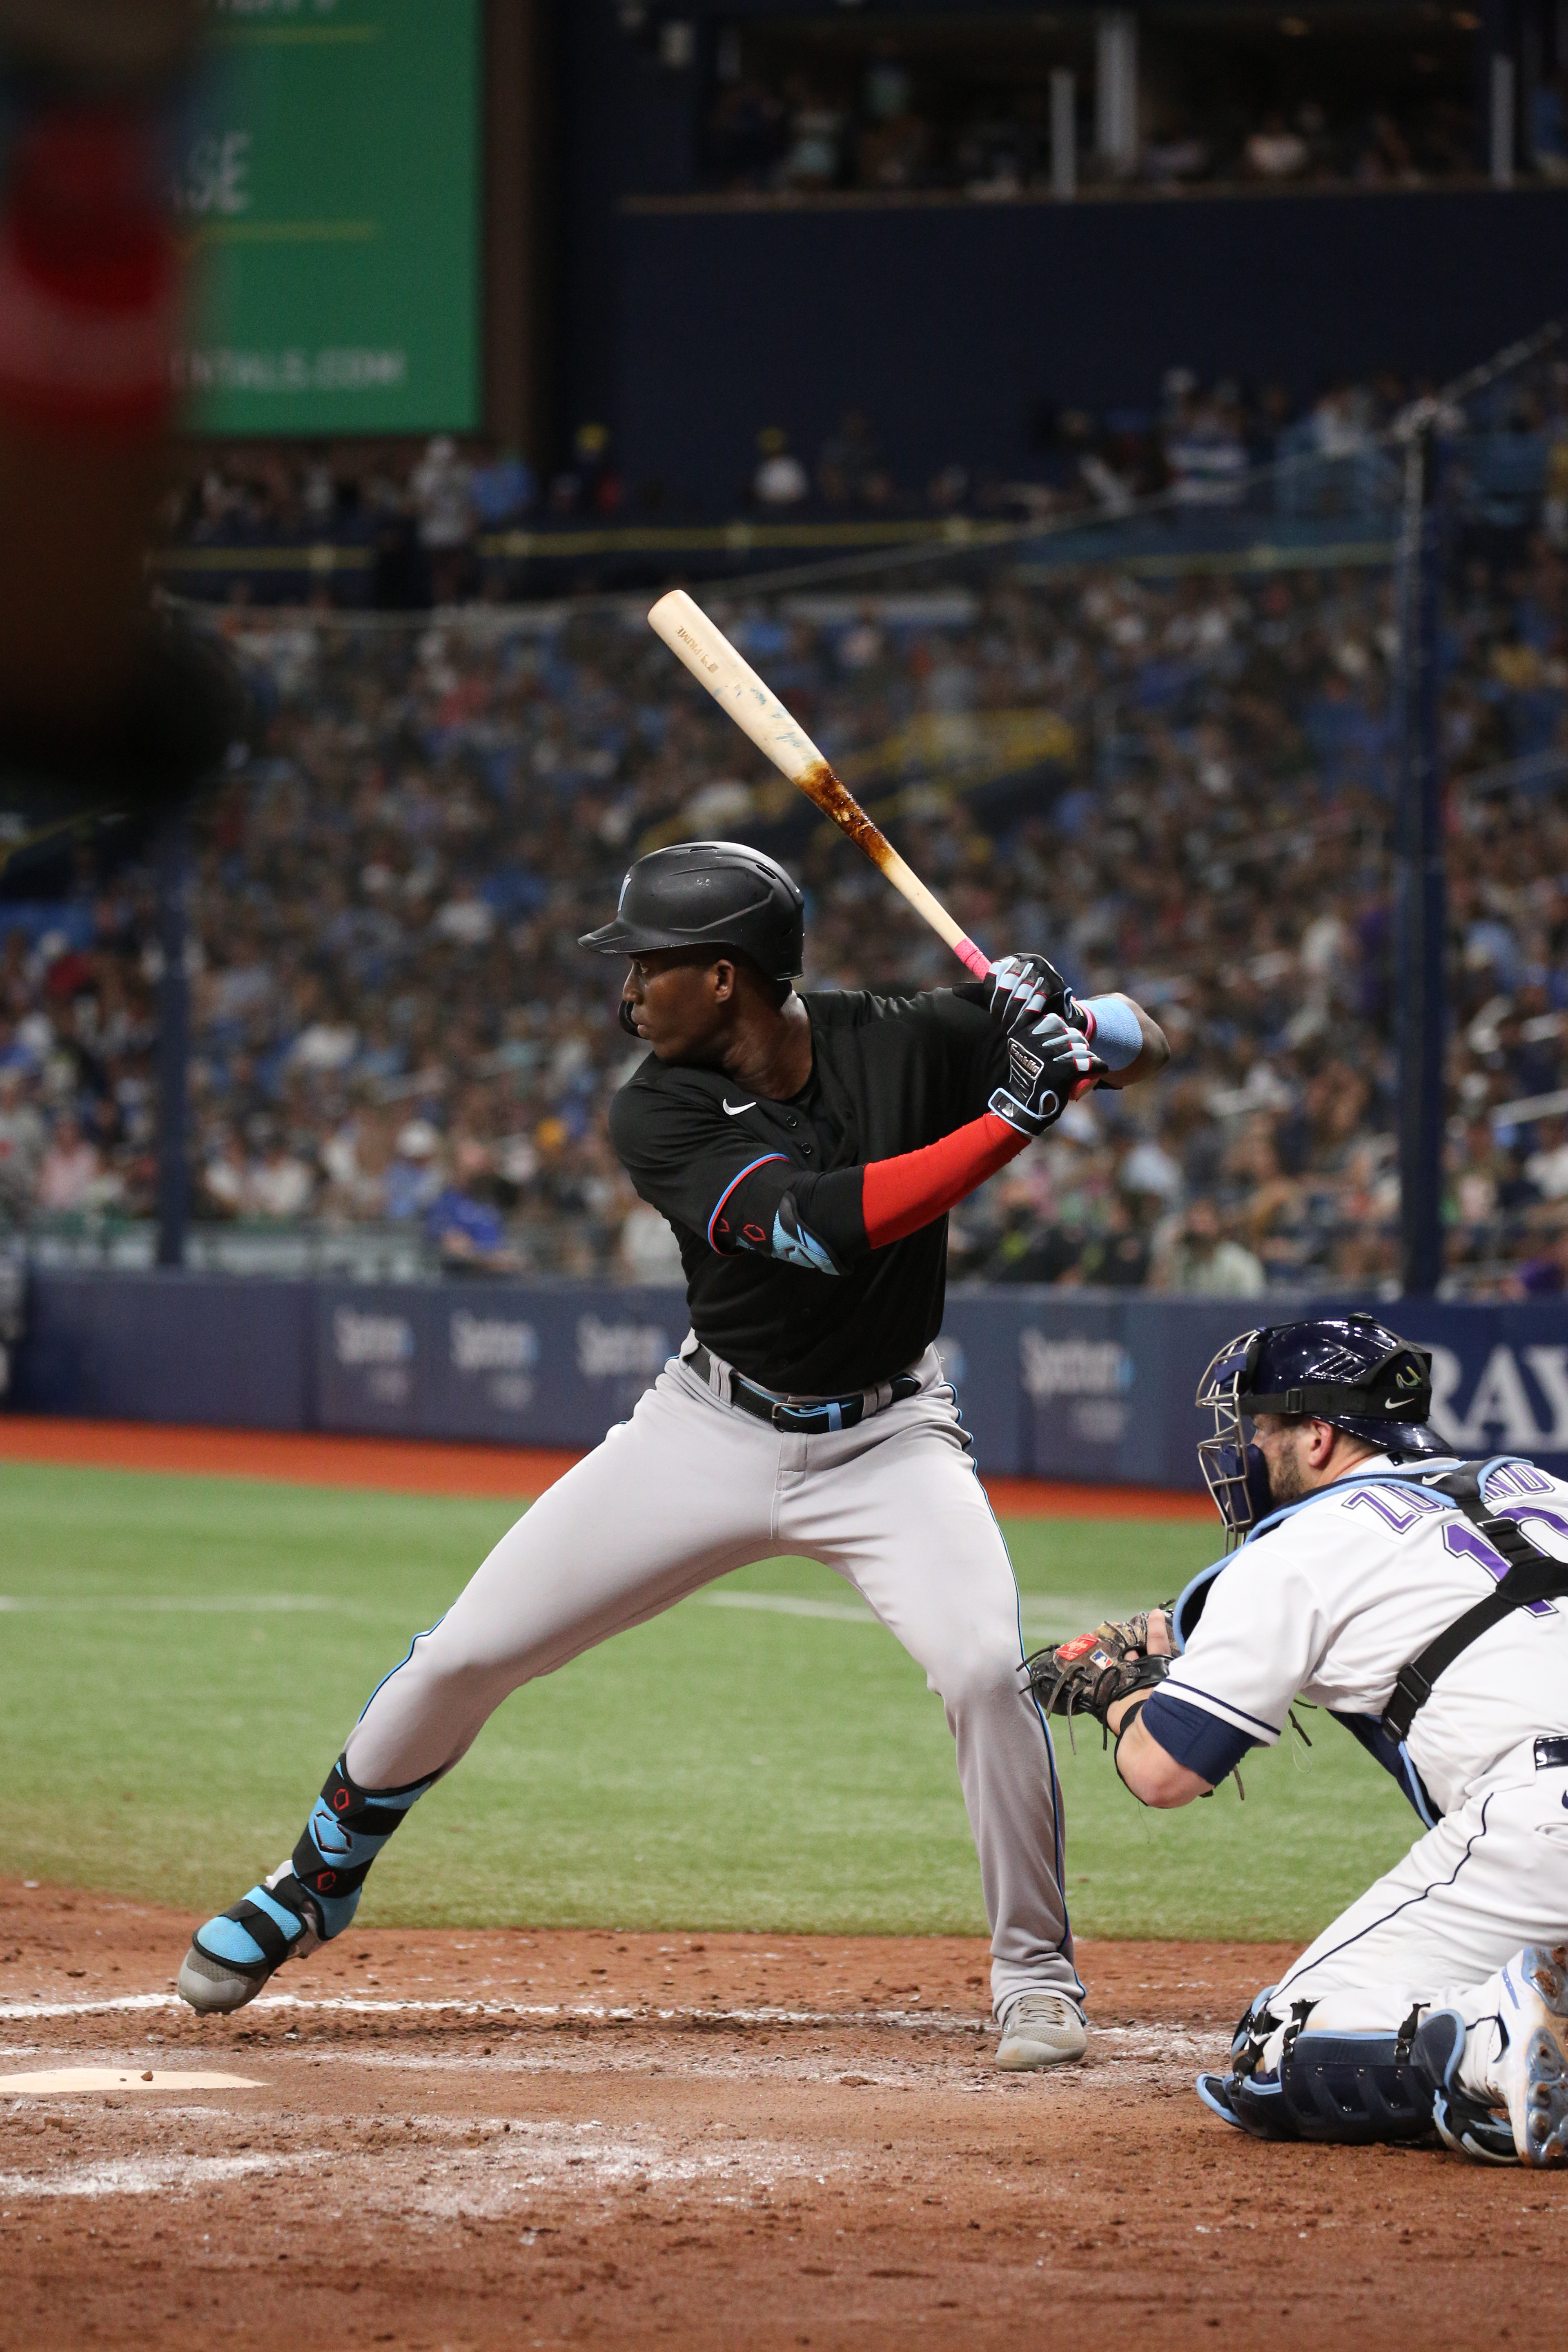 Jesus Sanchez #76 of the Miami Marlins bats in the top of the fifth inning against the Tampa Bay Rays at Tropicana Field